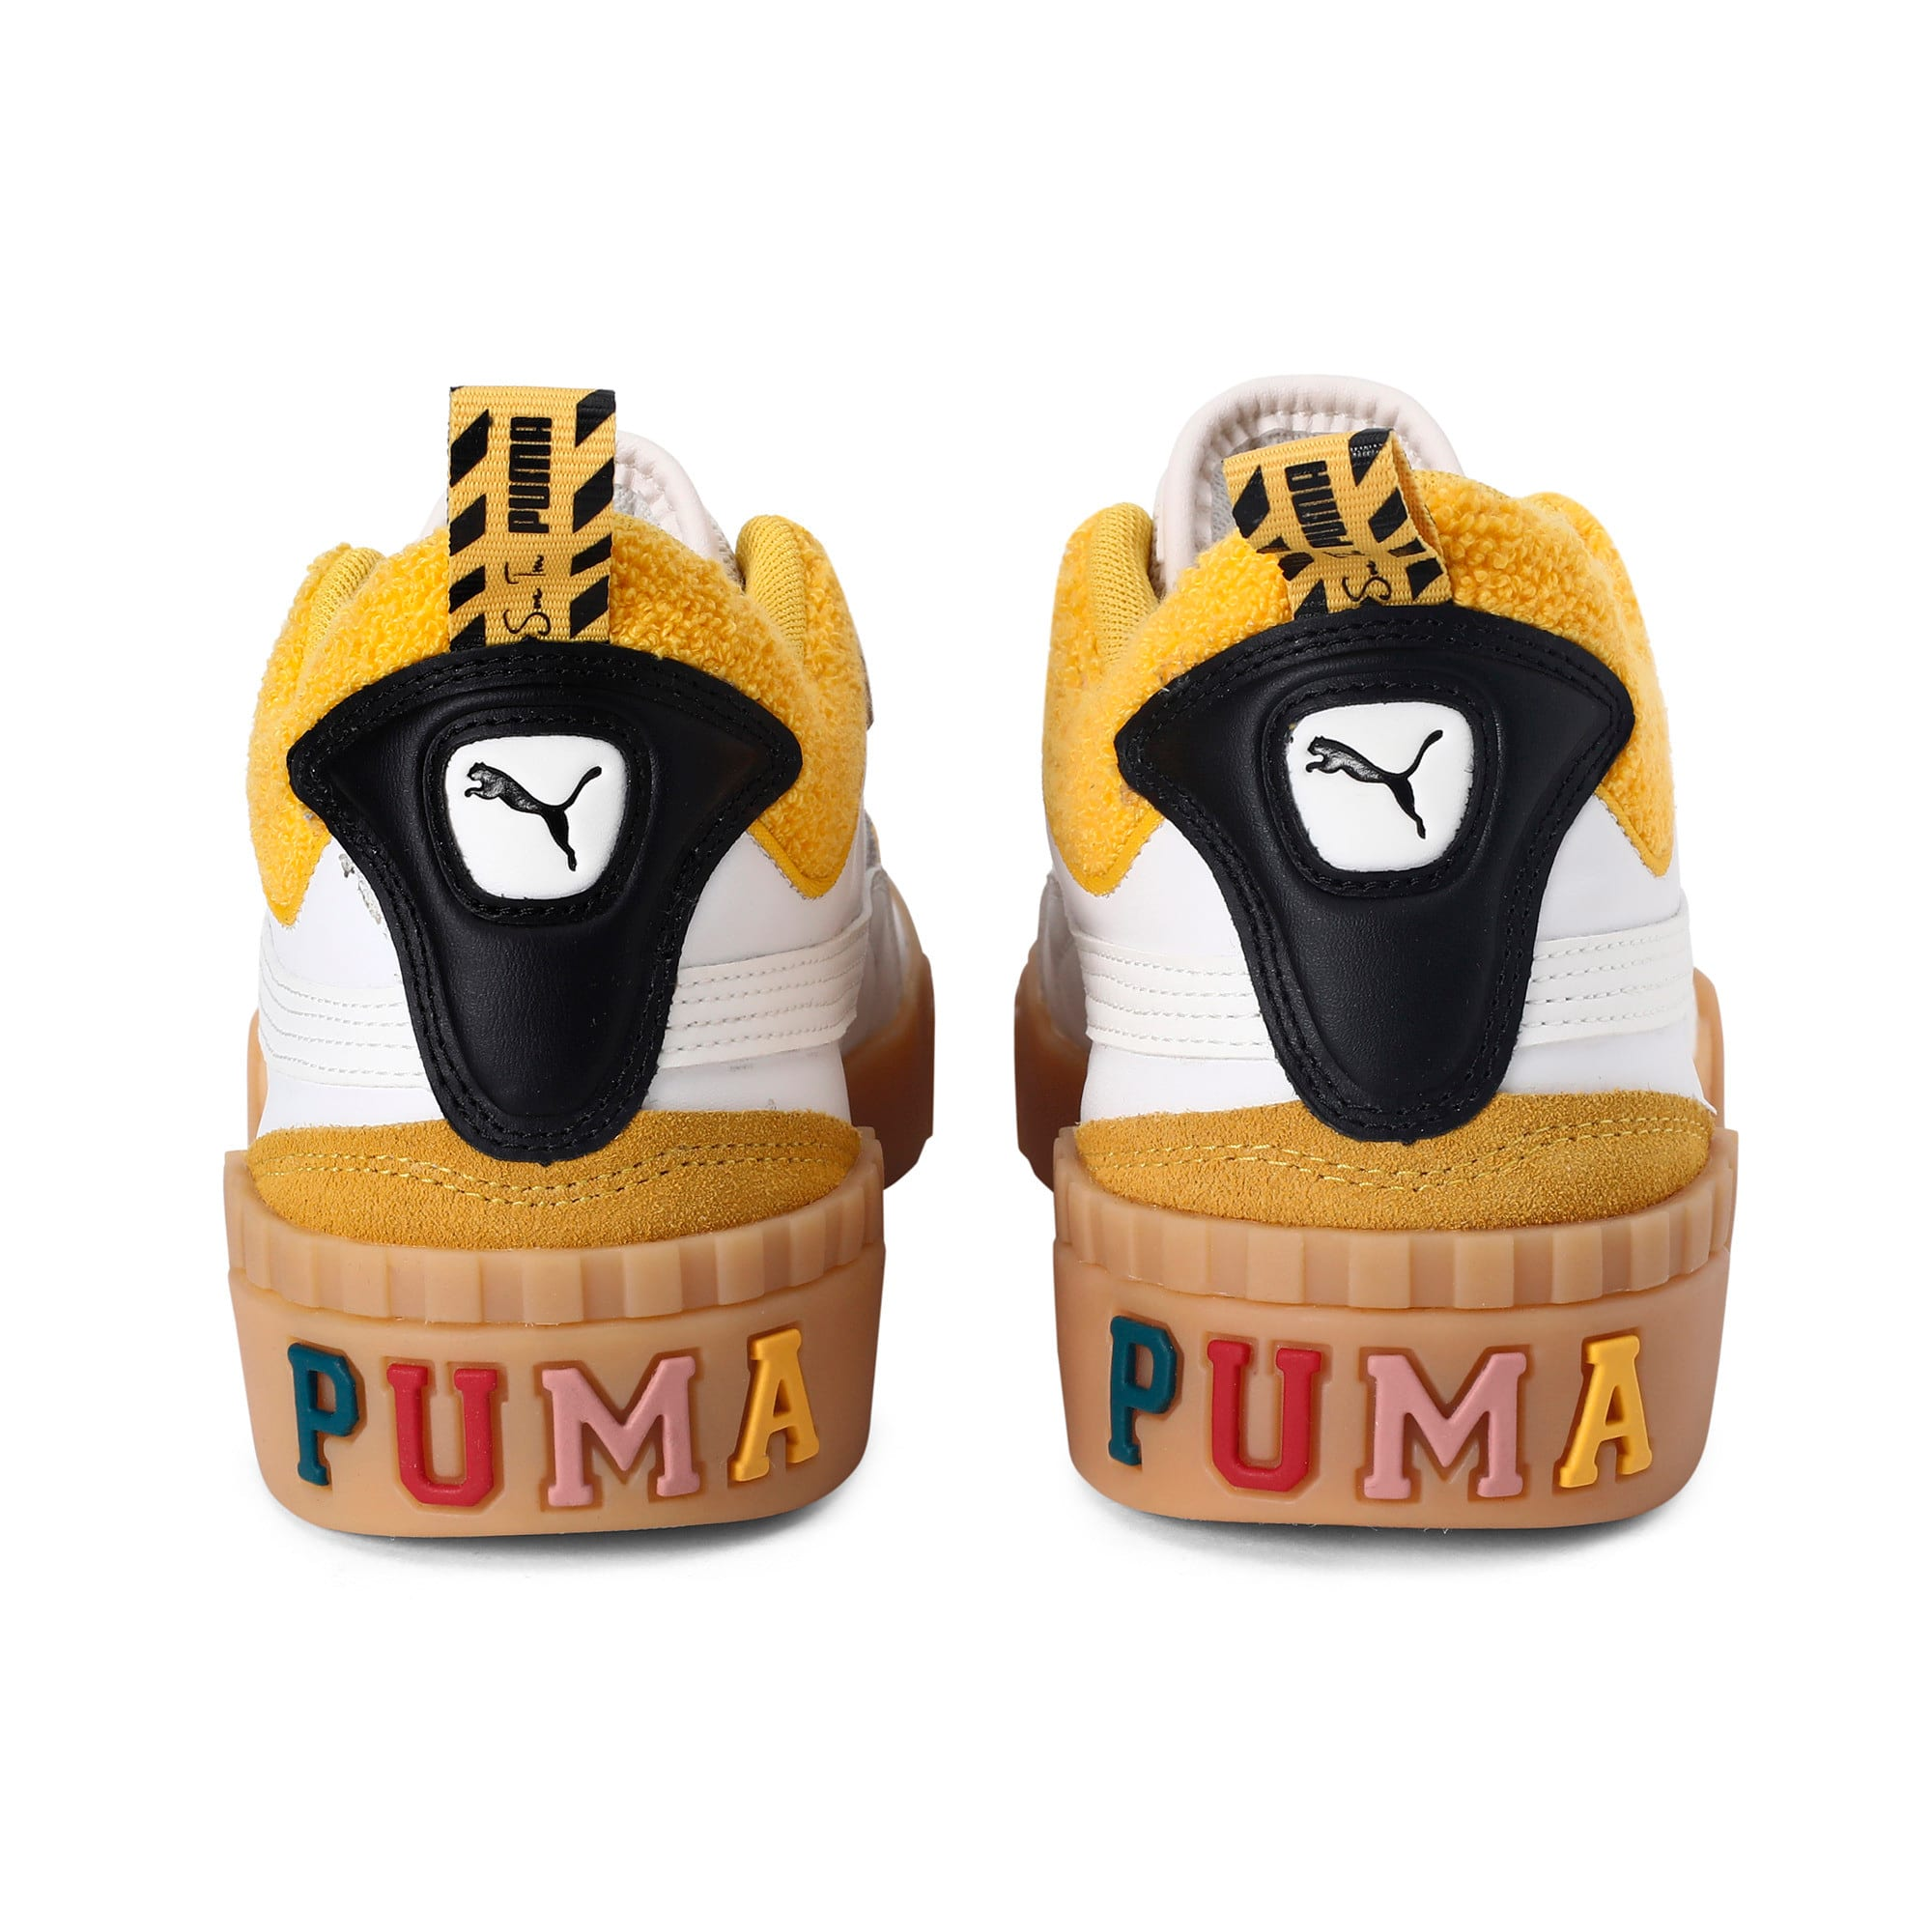 Thumbnail 3 of PUMA x SUE TSAI Cali Women's Trainers, Bright White-Bright White, medium-IND